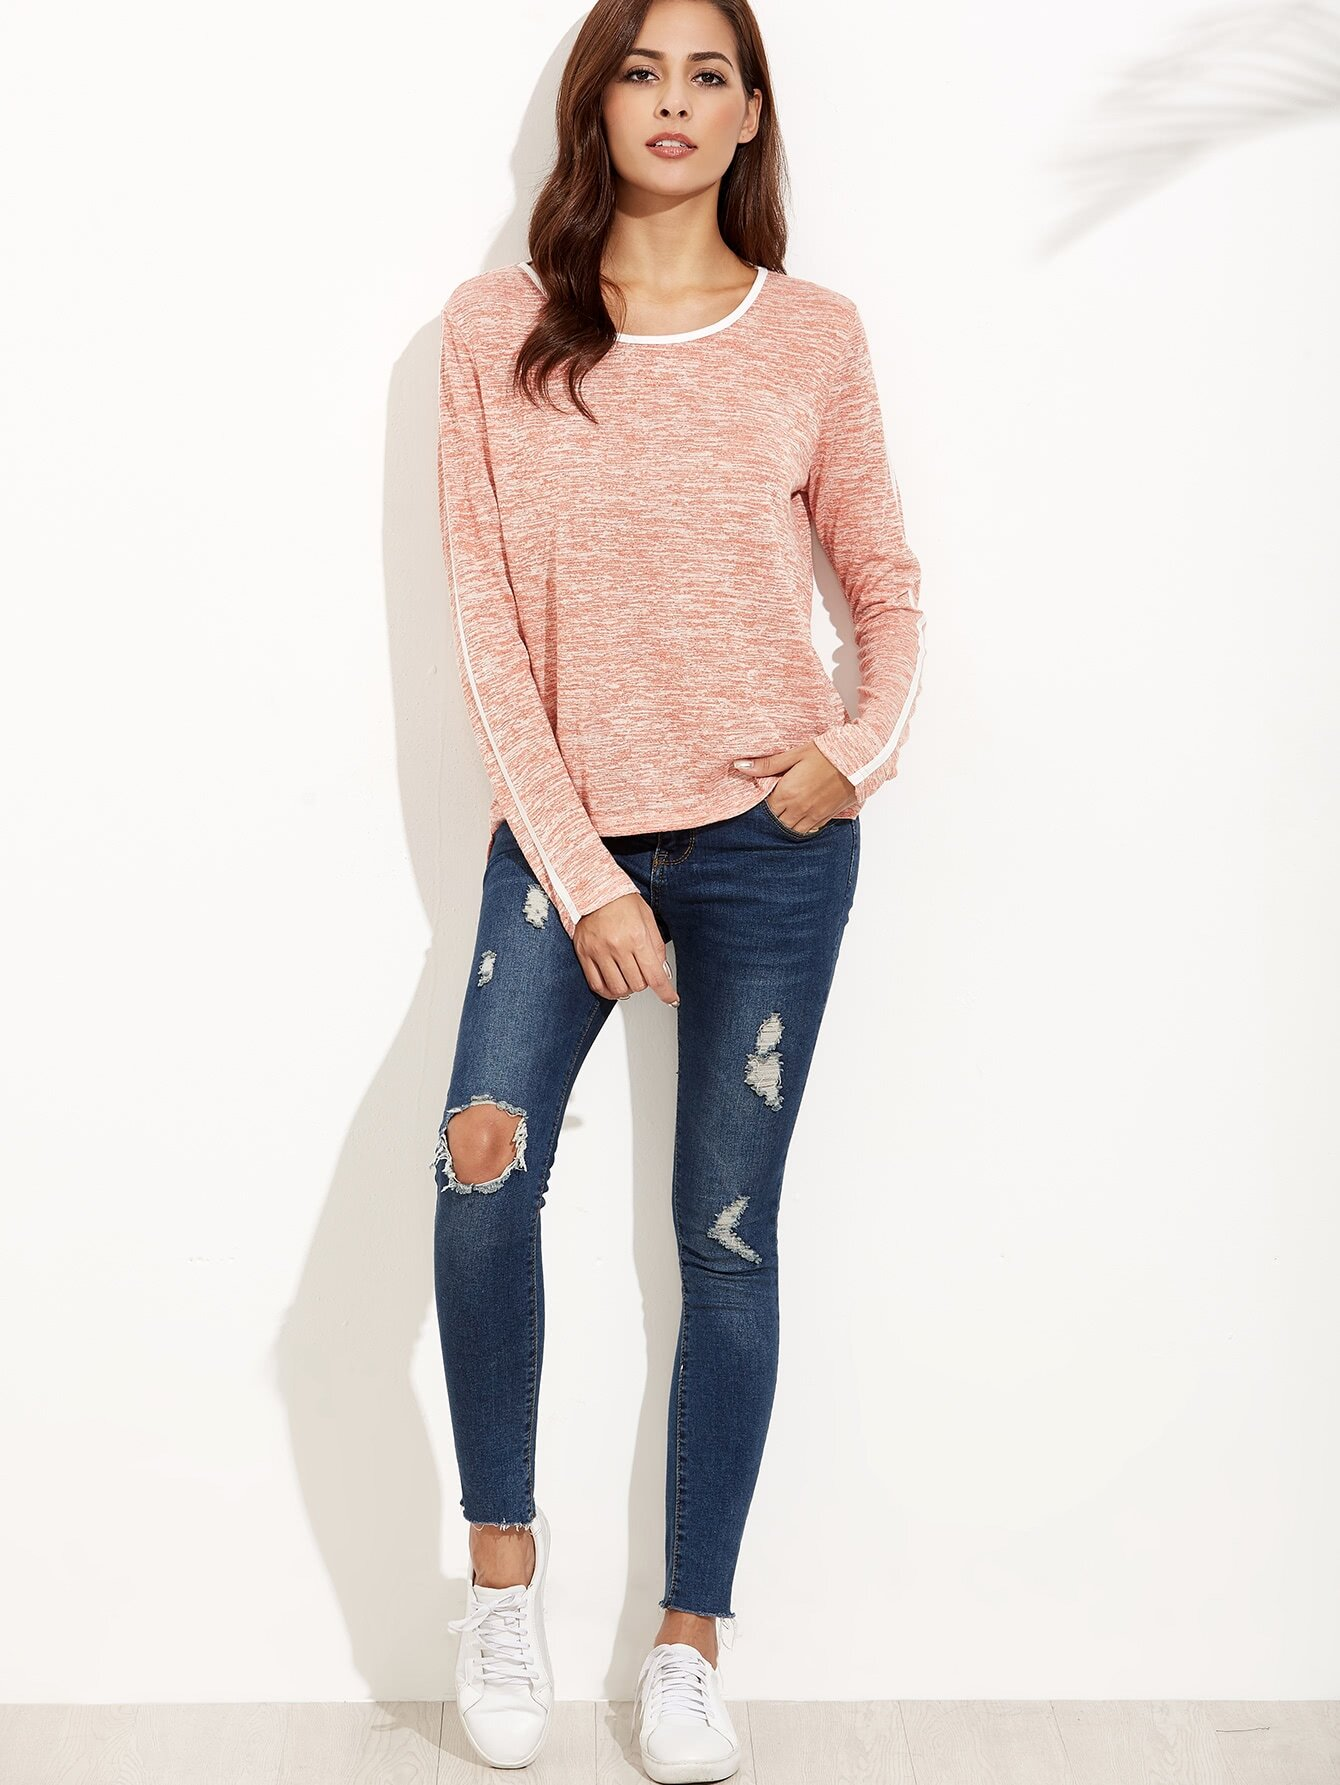 Pink Marled Knit Contrast Binding T-shirt